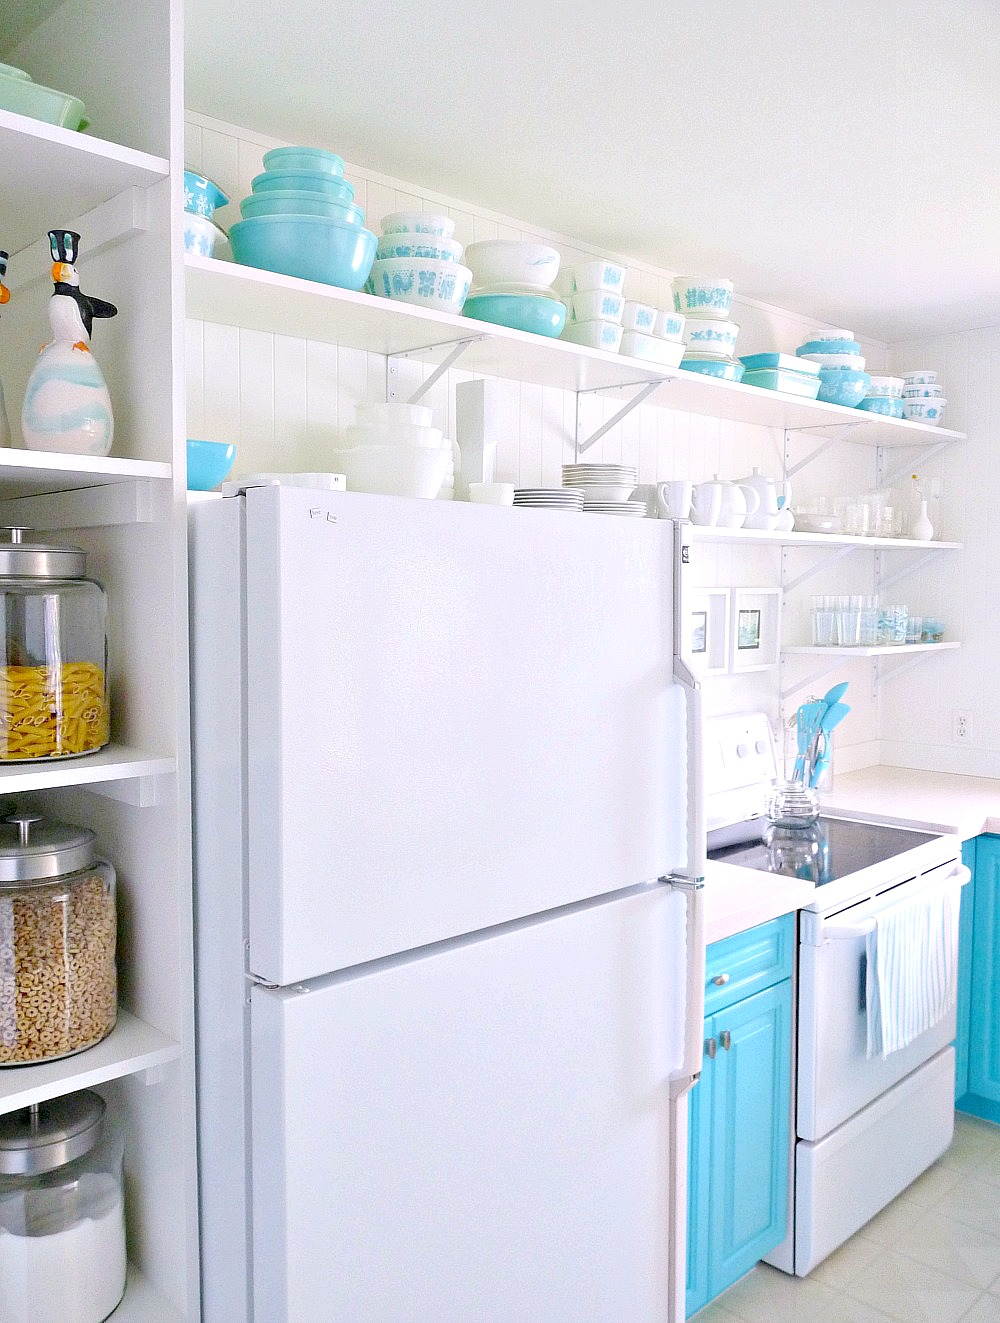 Lake House Kitchen A Budget Friendly Turquoise Kitchen Makeover Dans Le Lakehouse